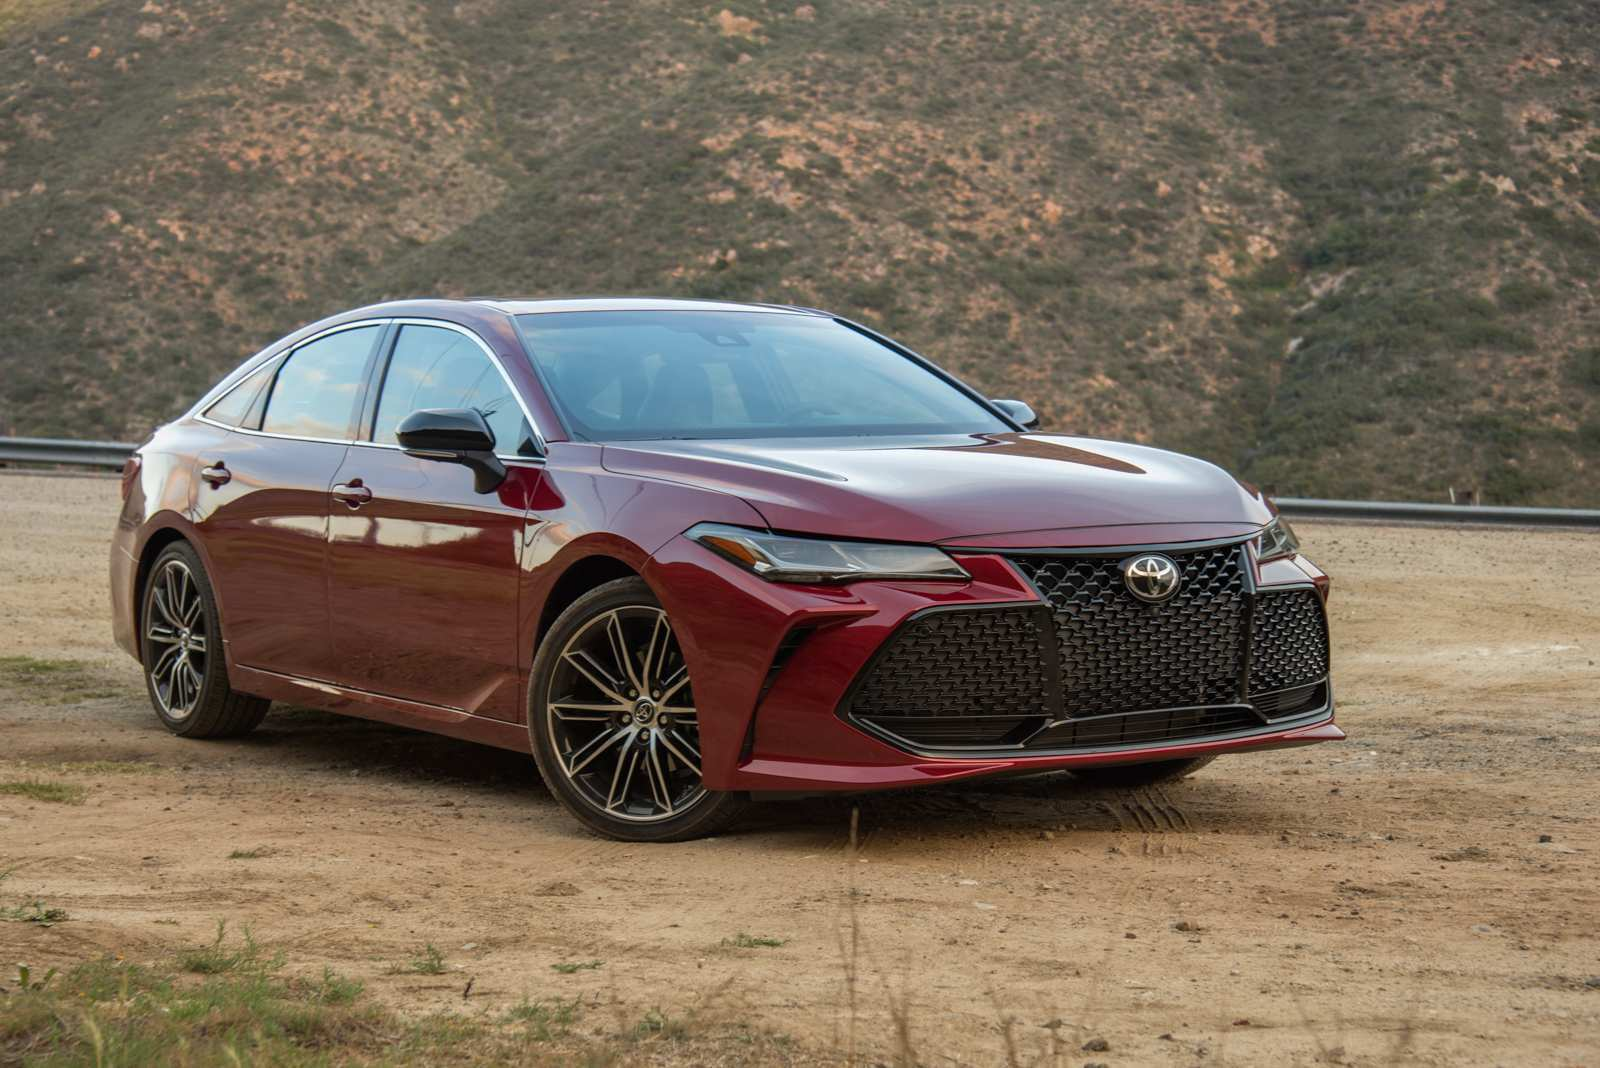 48 New New Toyota Avalon 2019 Review Exterior And Interior Review Speed Test by New Toyota Avalon 2019 Review Exterior And Interior Review